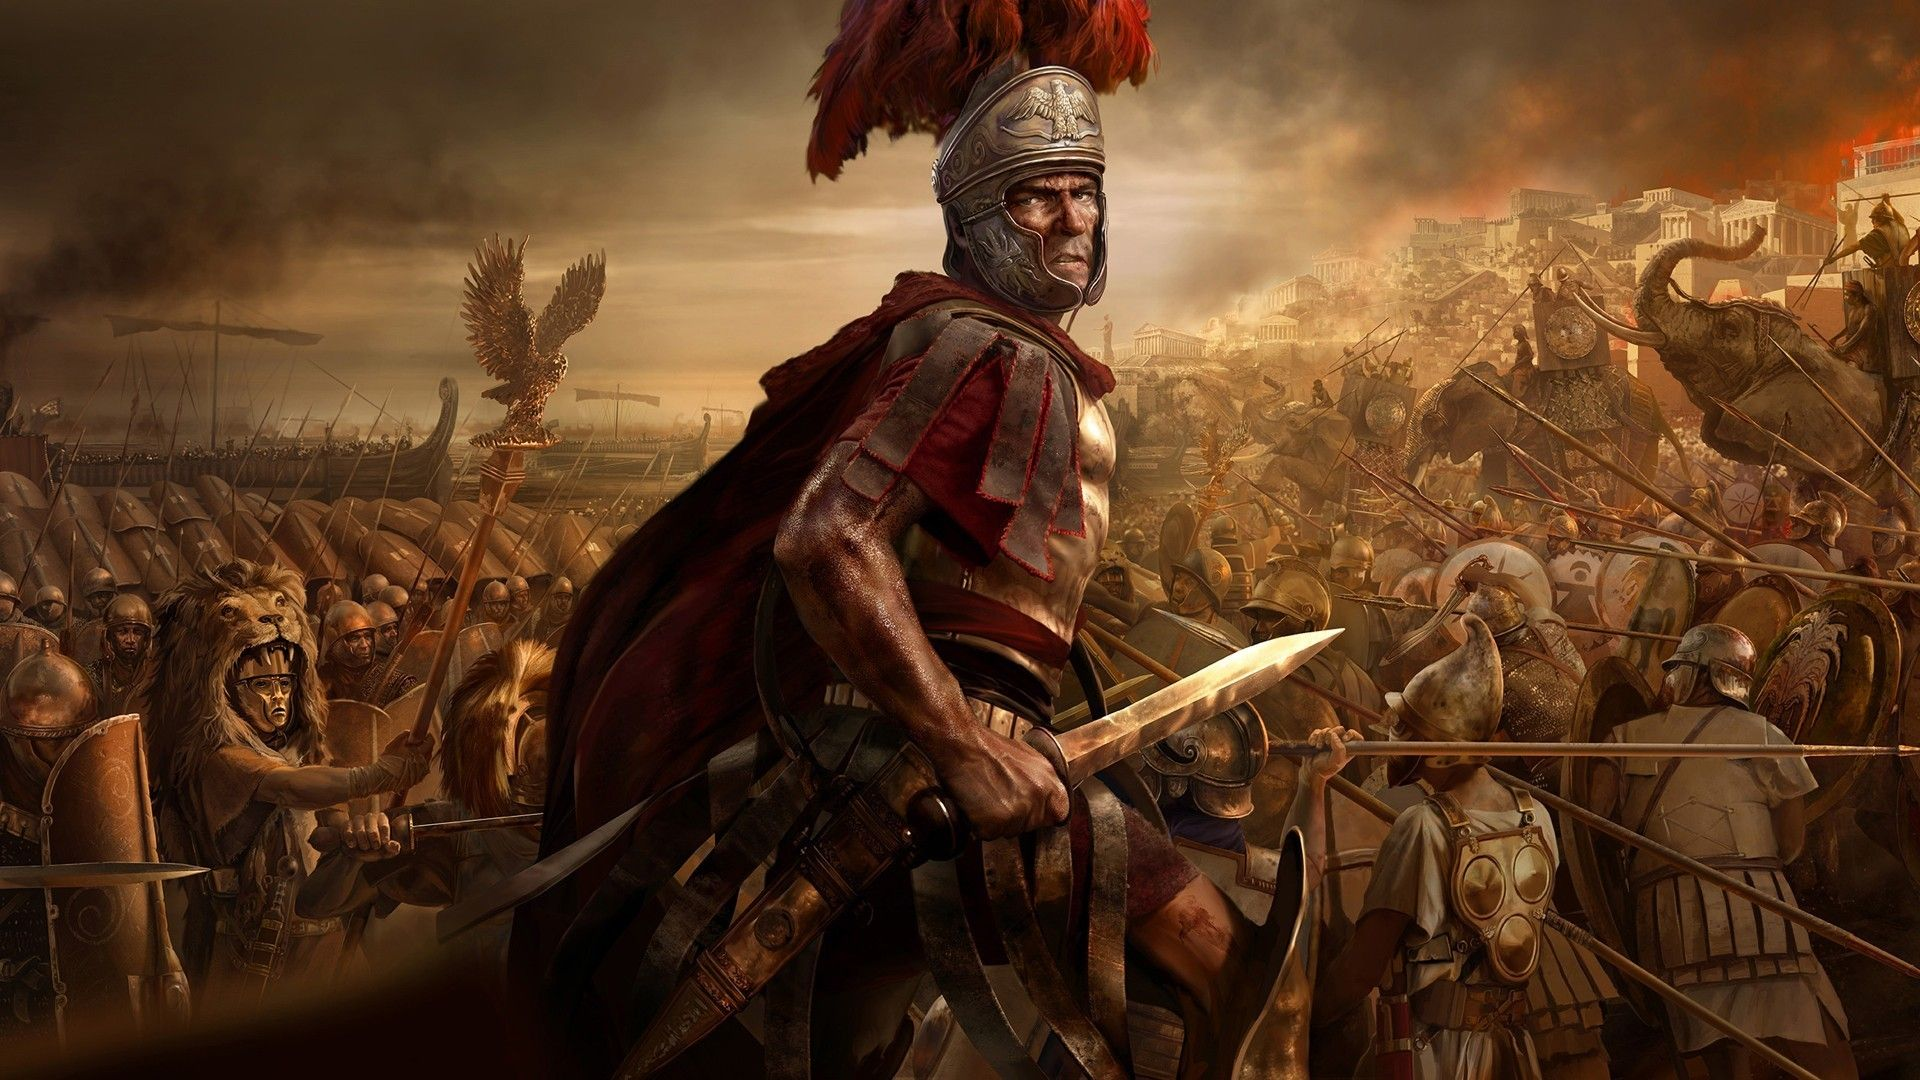 Roman Soldier Wallpapers - Top Free Roman Soldier Backgrounds ...